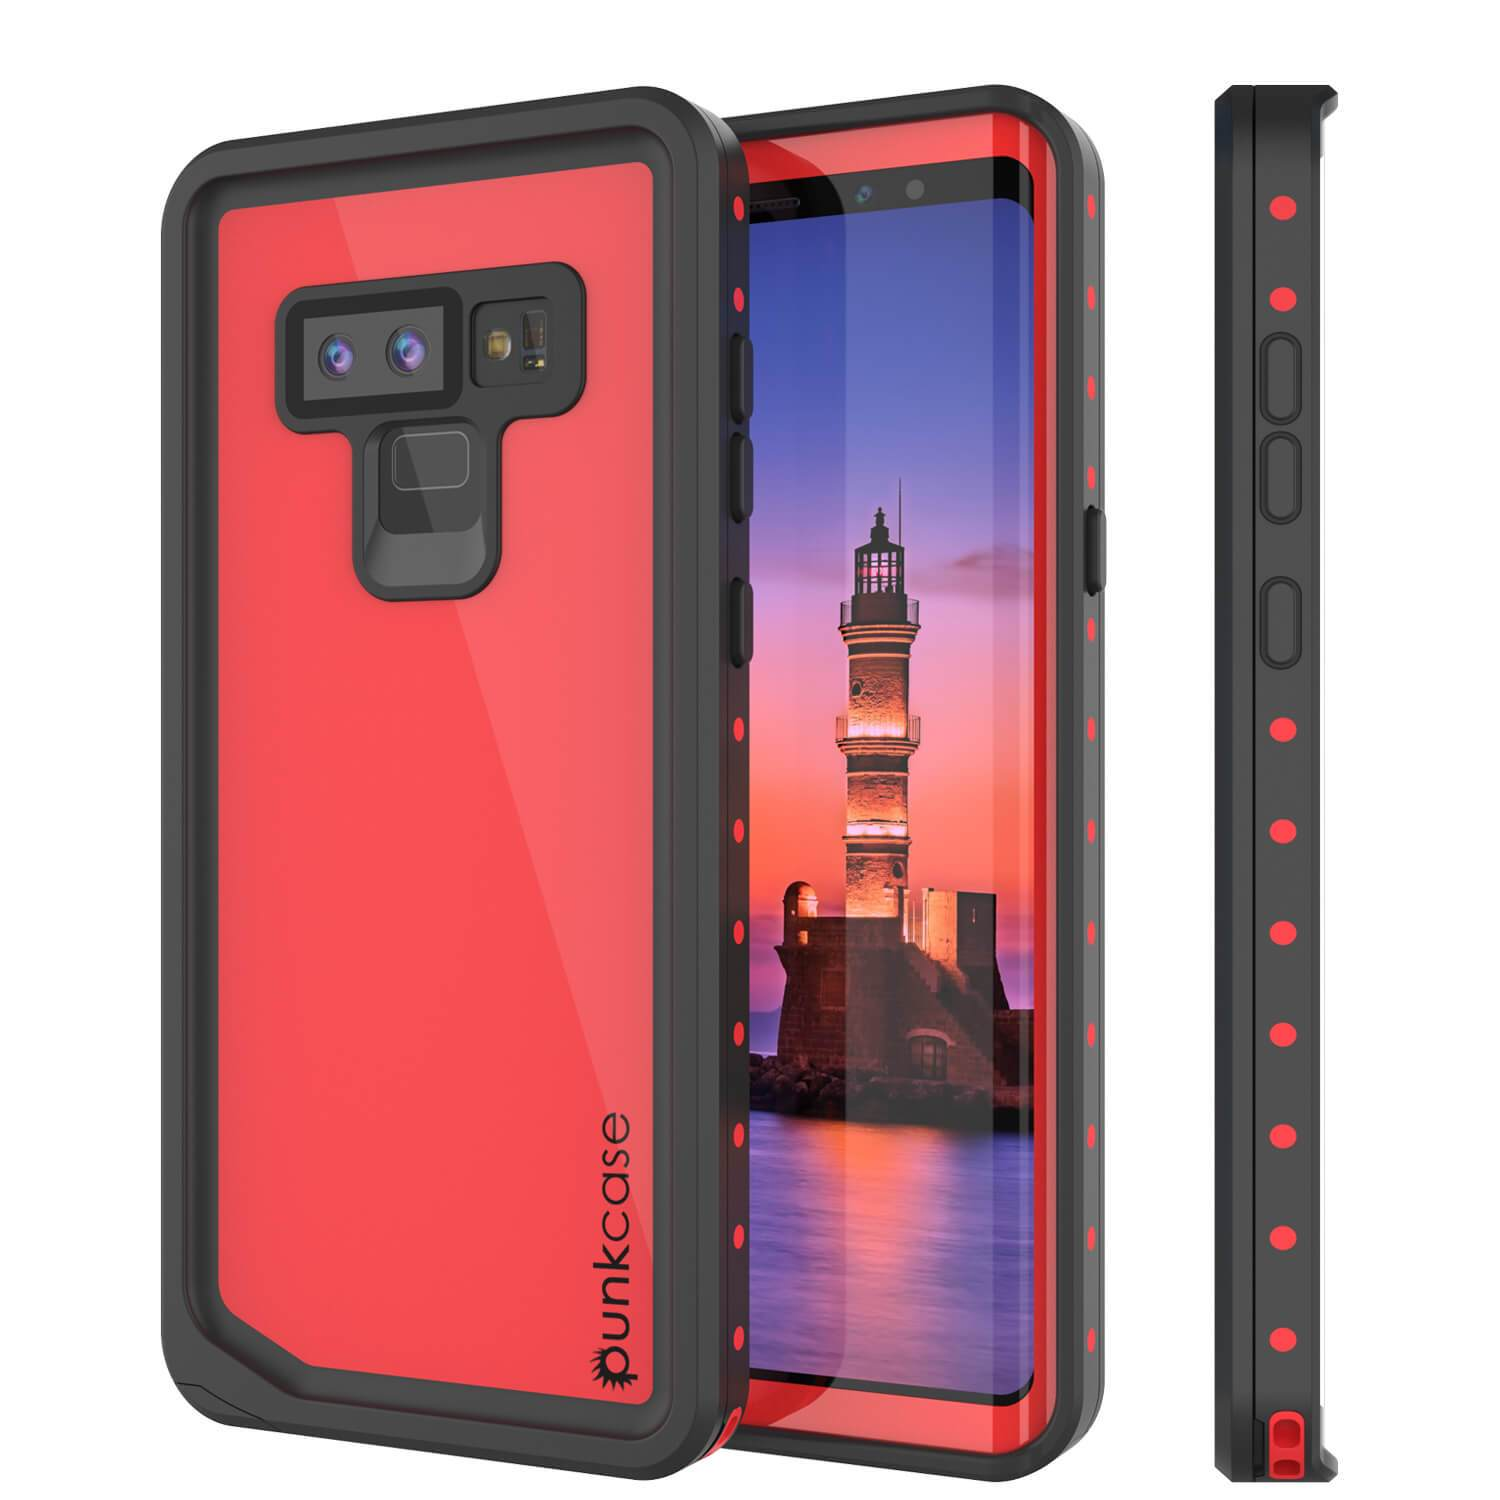 Galaxy Note 9 Waterproof PunkCase Cover StudStar [RED] Thin 6.6ft